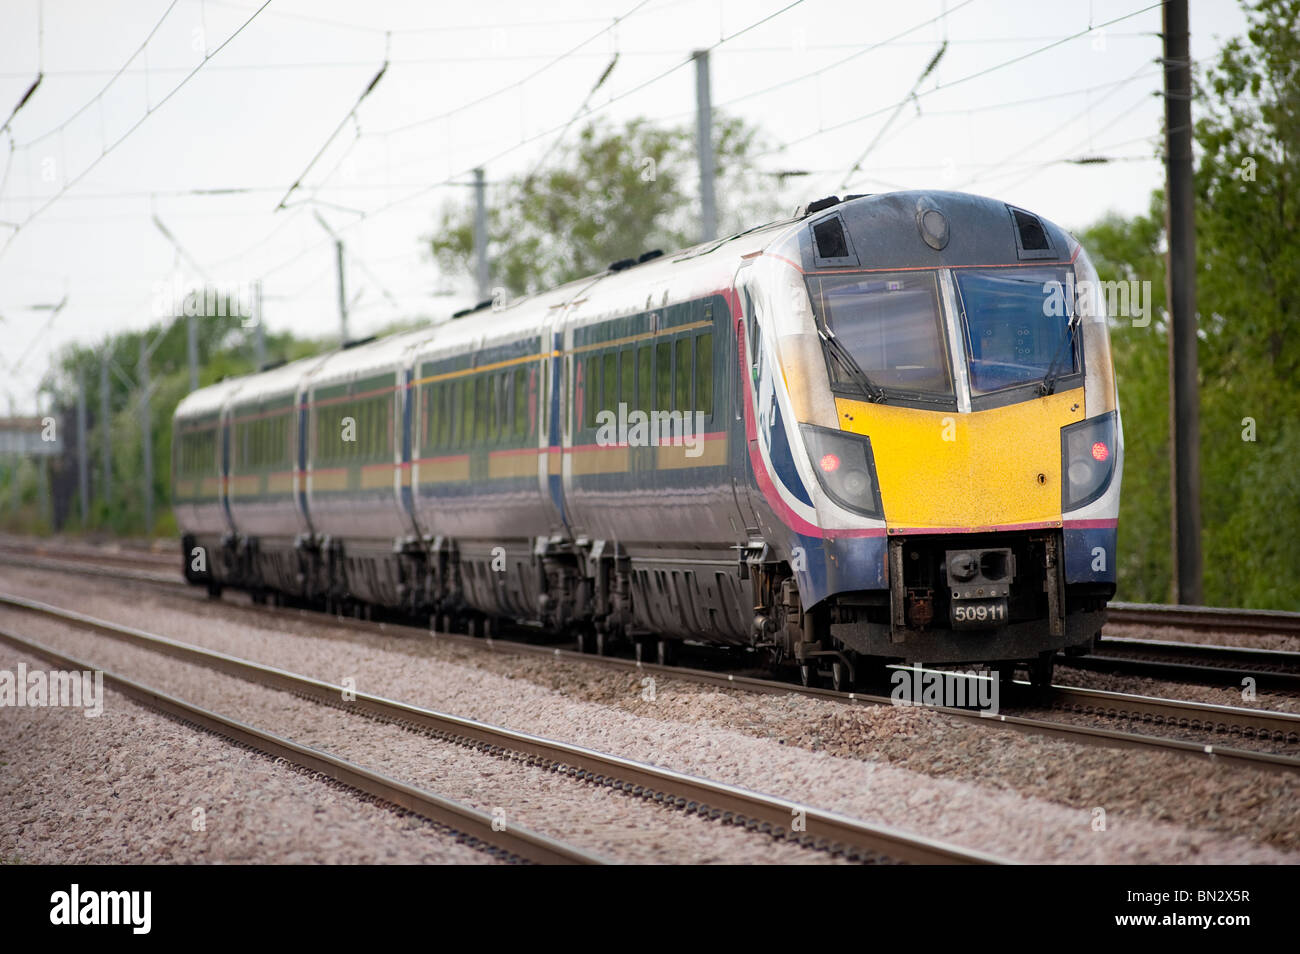 First Hull trains passenger train class 180 travelling at speed through the english countryside. - Stock Image